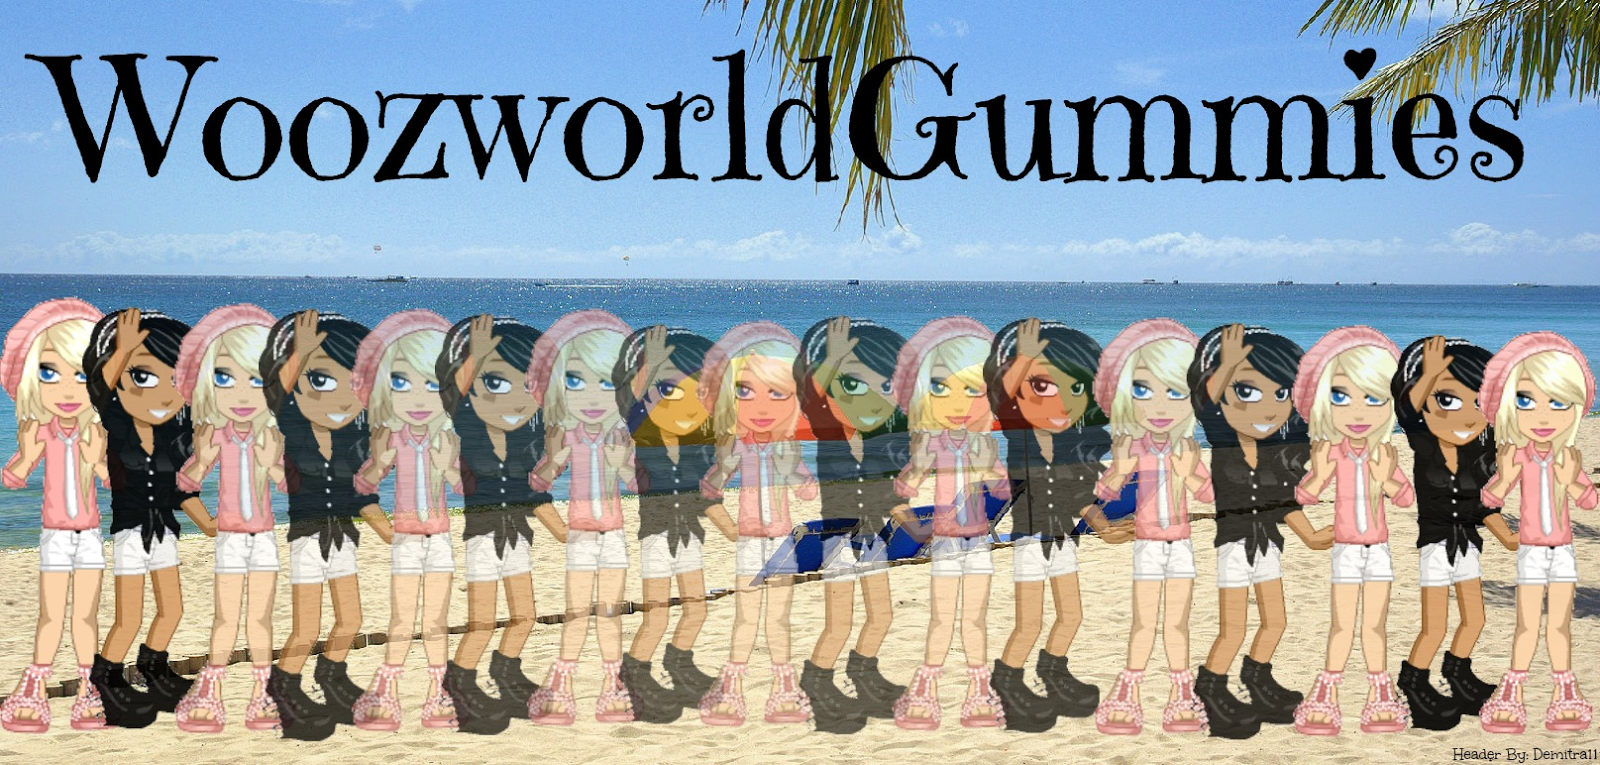 Woozworld Gummies